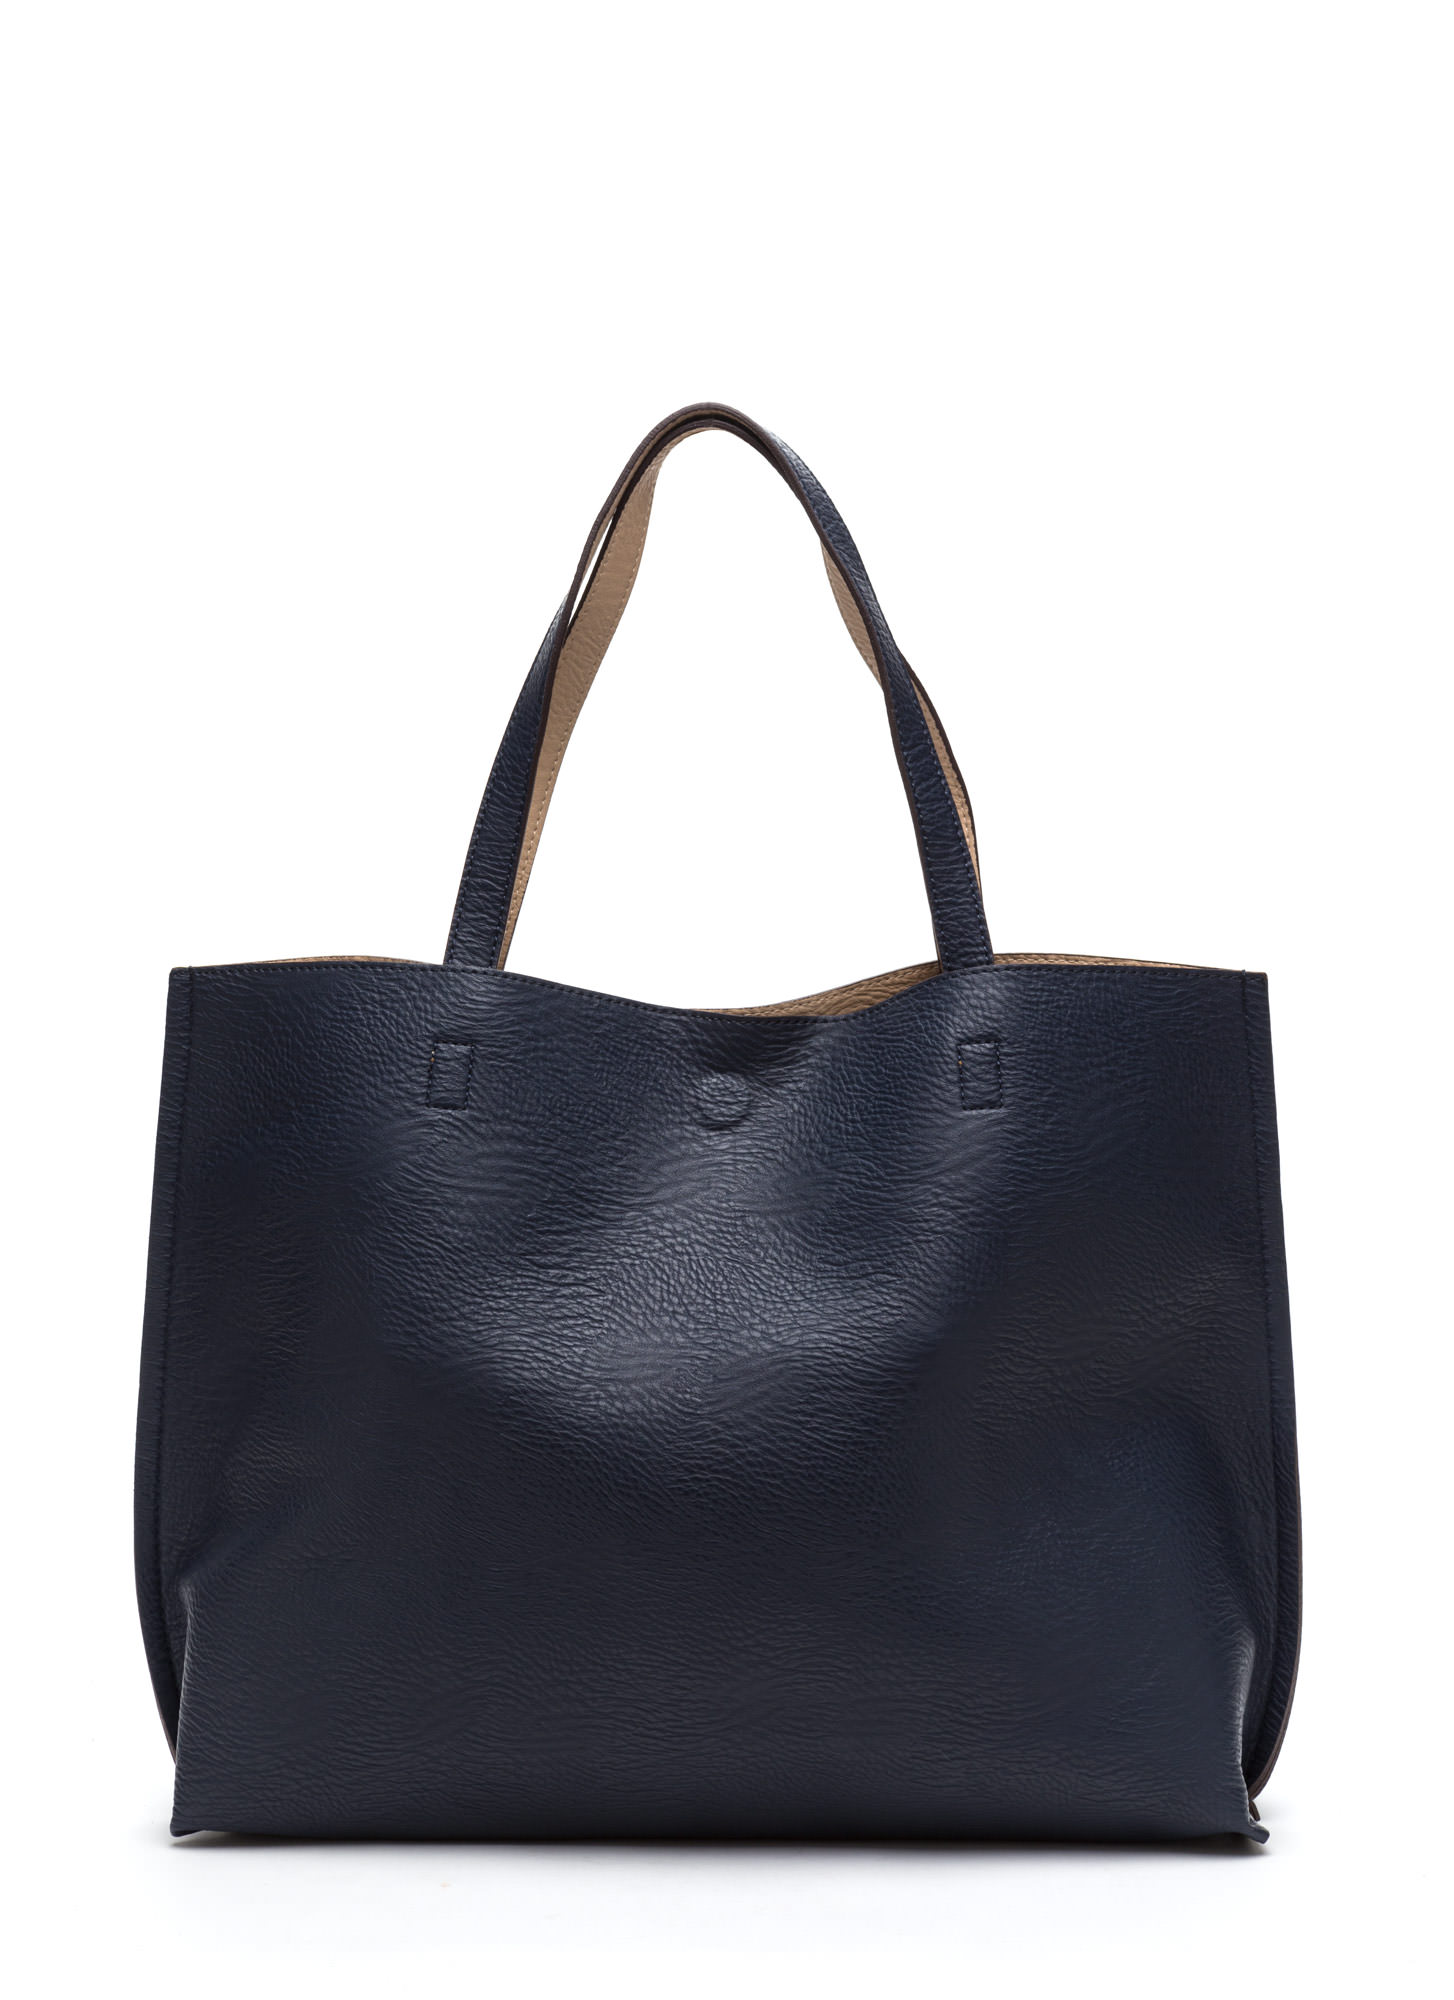 Street Level Two-Tone Reversible Tote Bag NAVYTAUPE